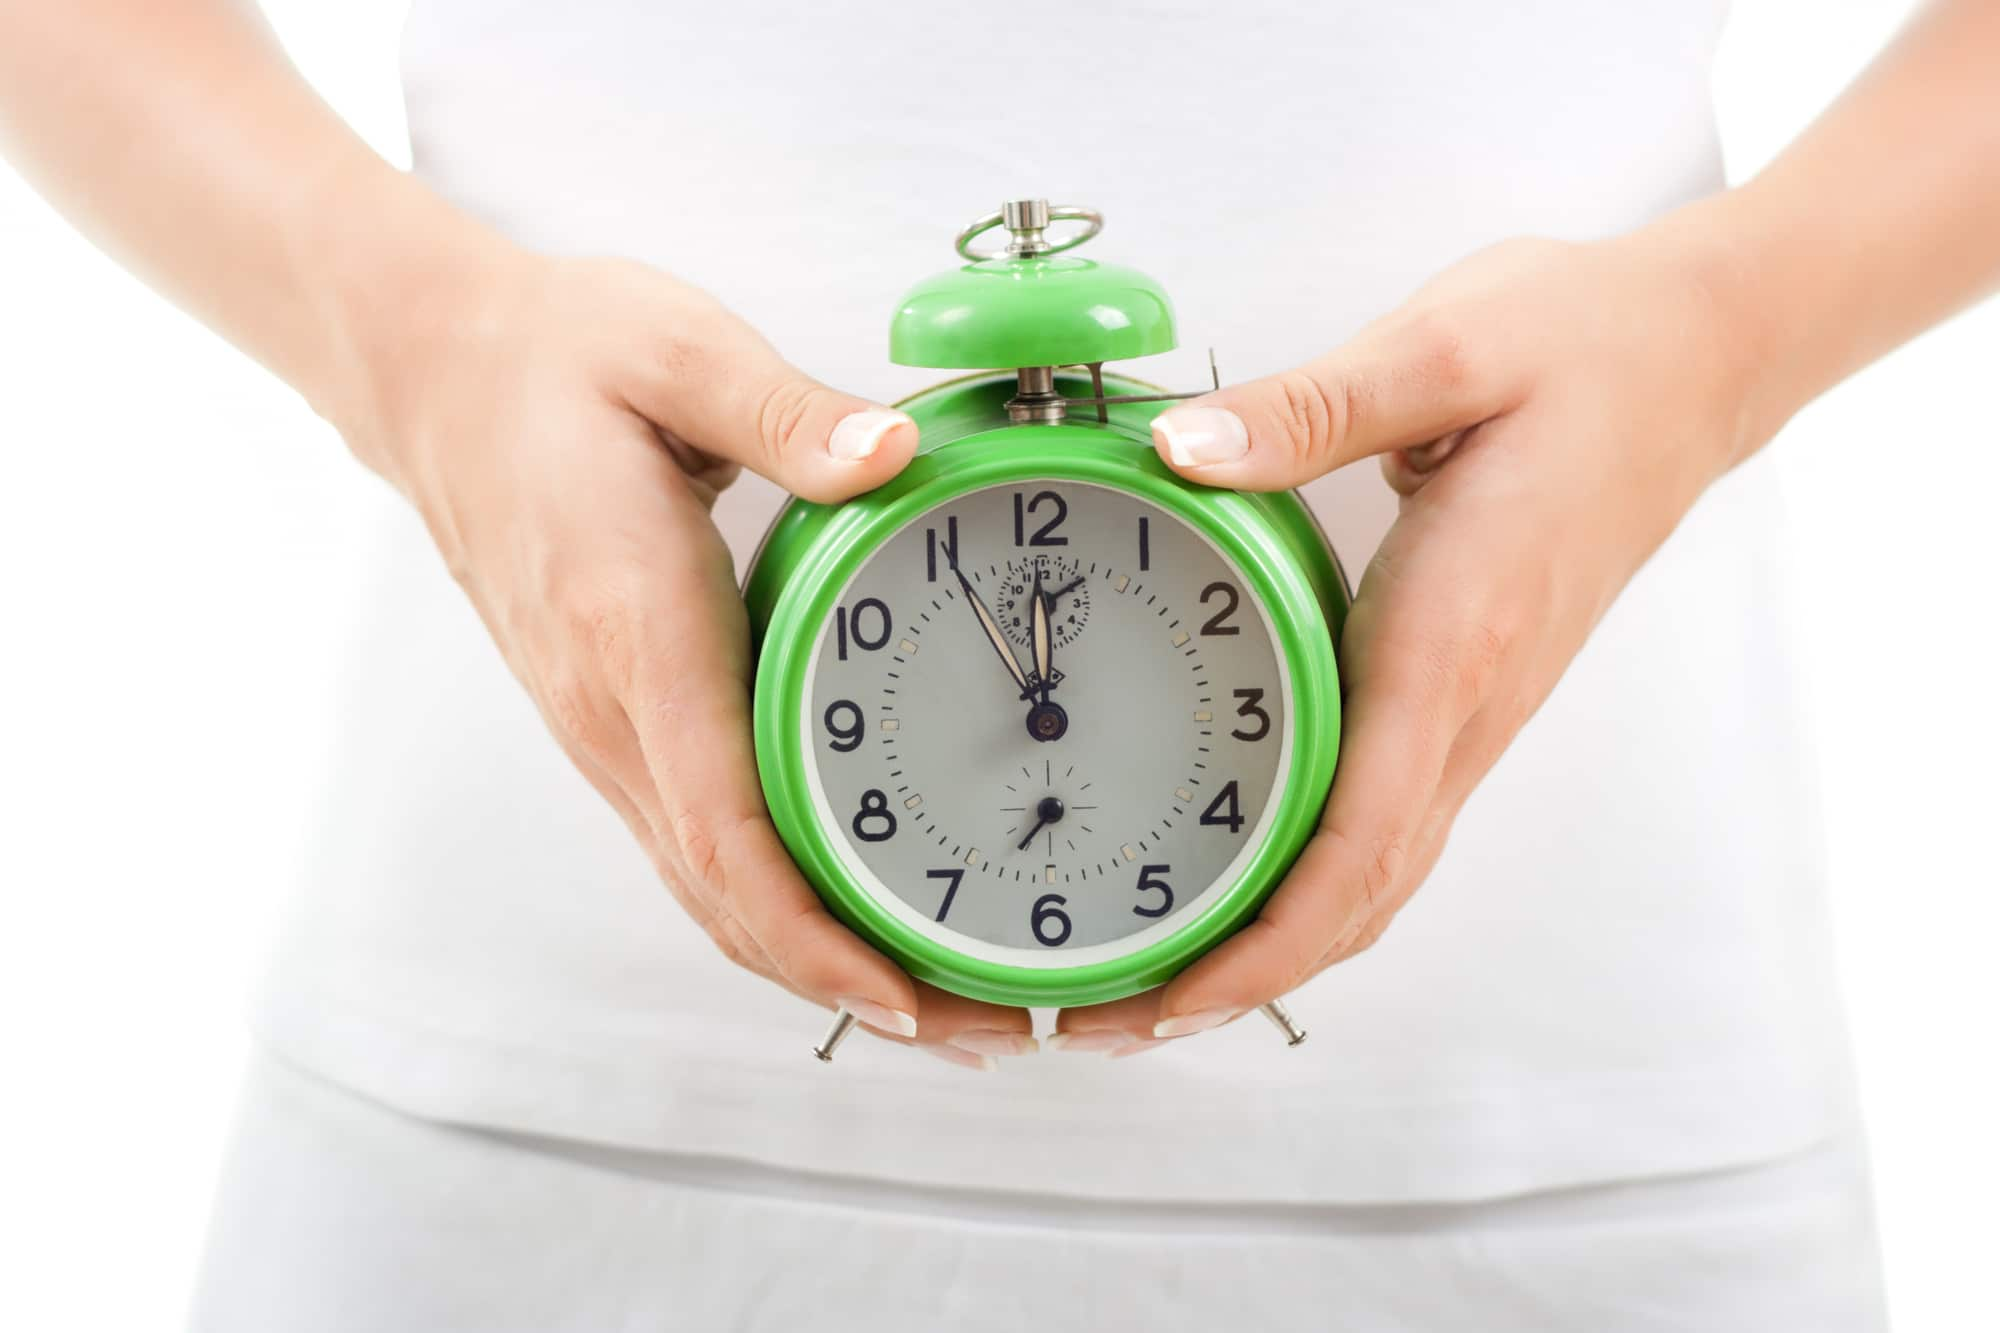 Your Biological Clock Ticking? How To Tell Your Date